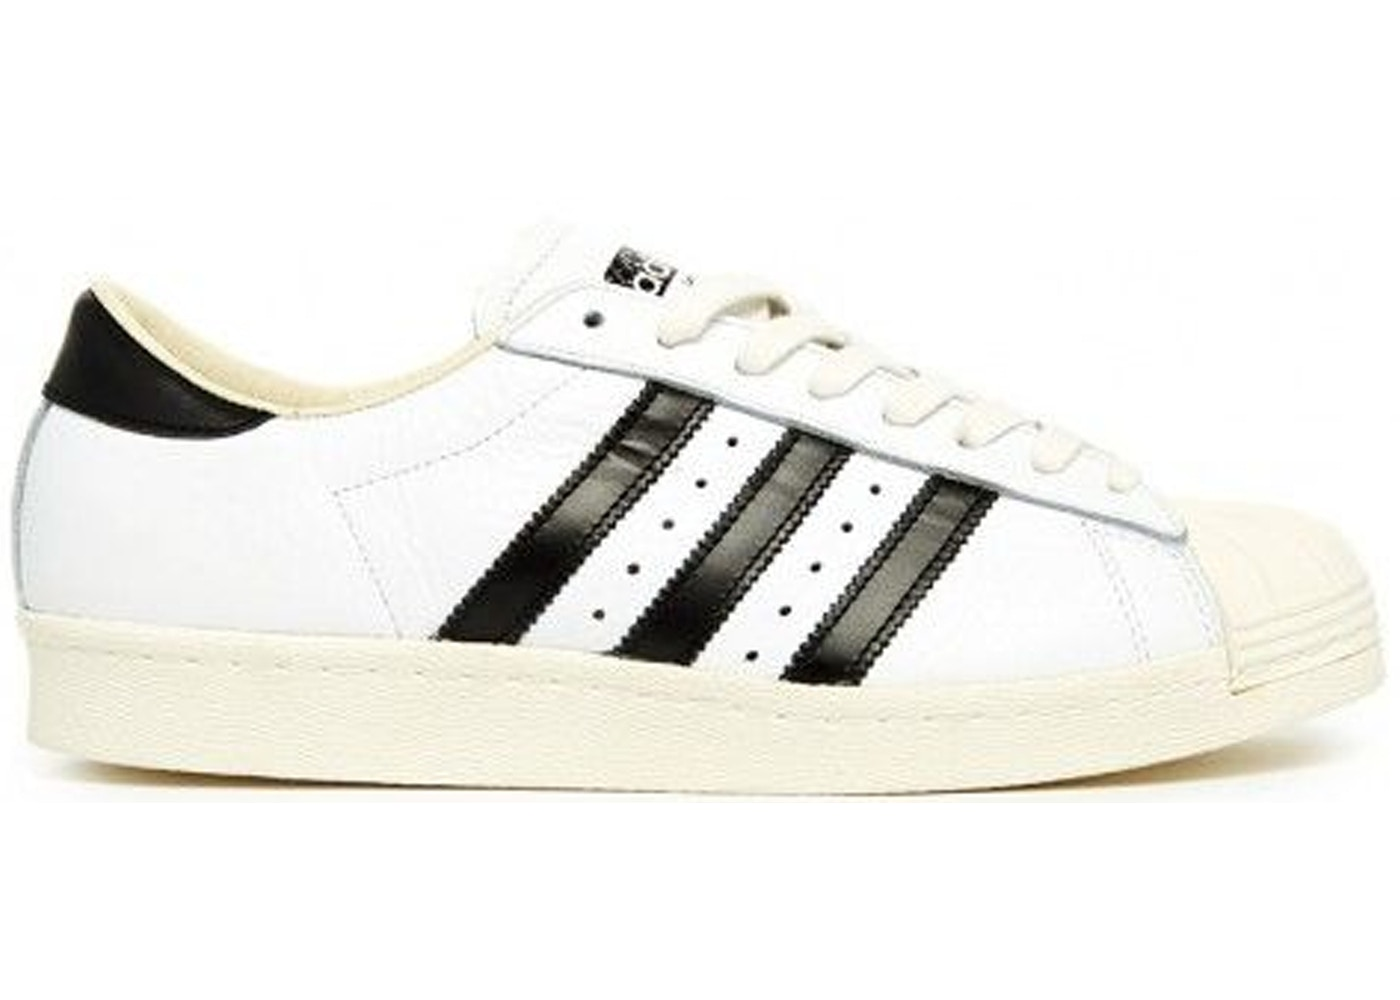 reputable site e226d a2f93 adidas Superstar Made In France White Black